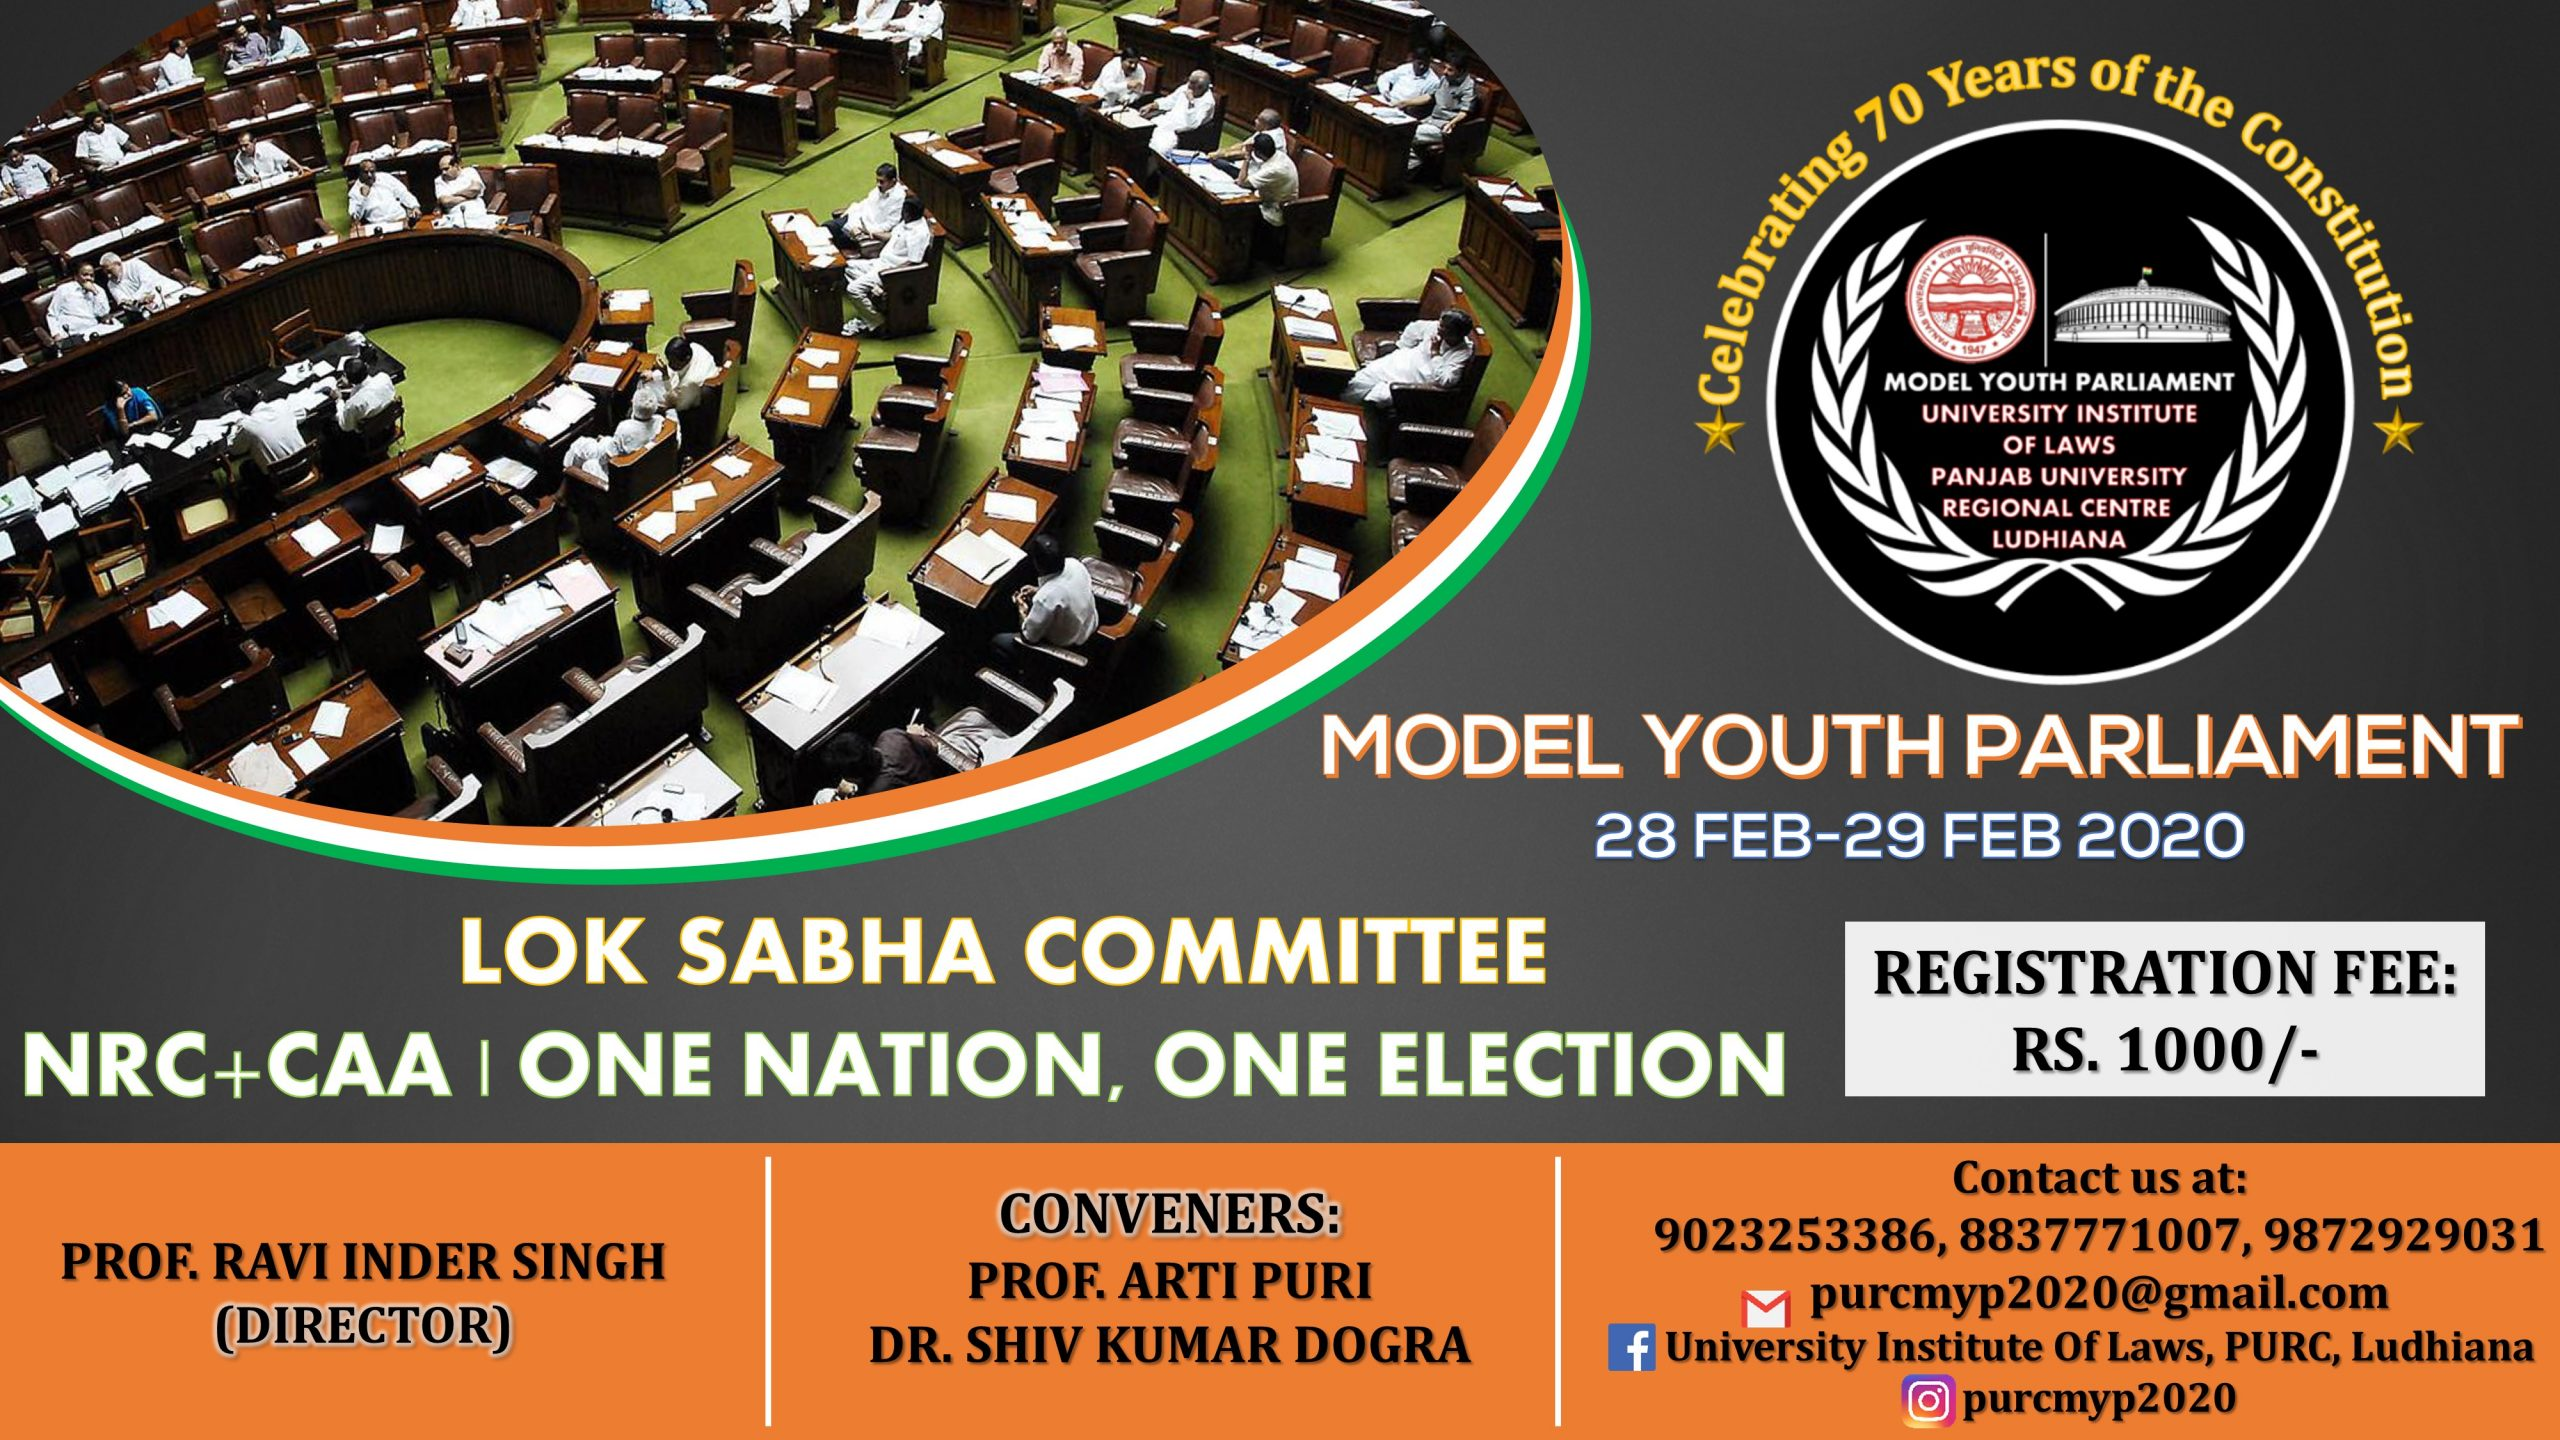 2nd Model Youth Parliament at Panjab University Regional Centre, Ludhiana